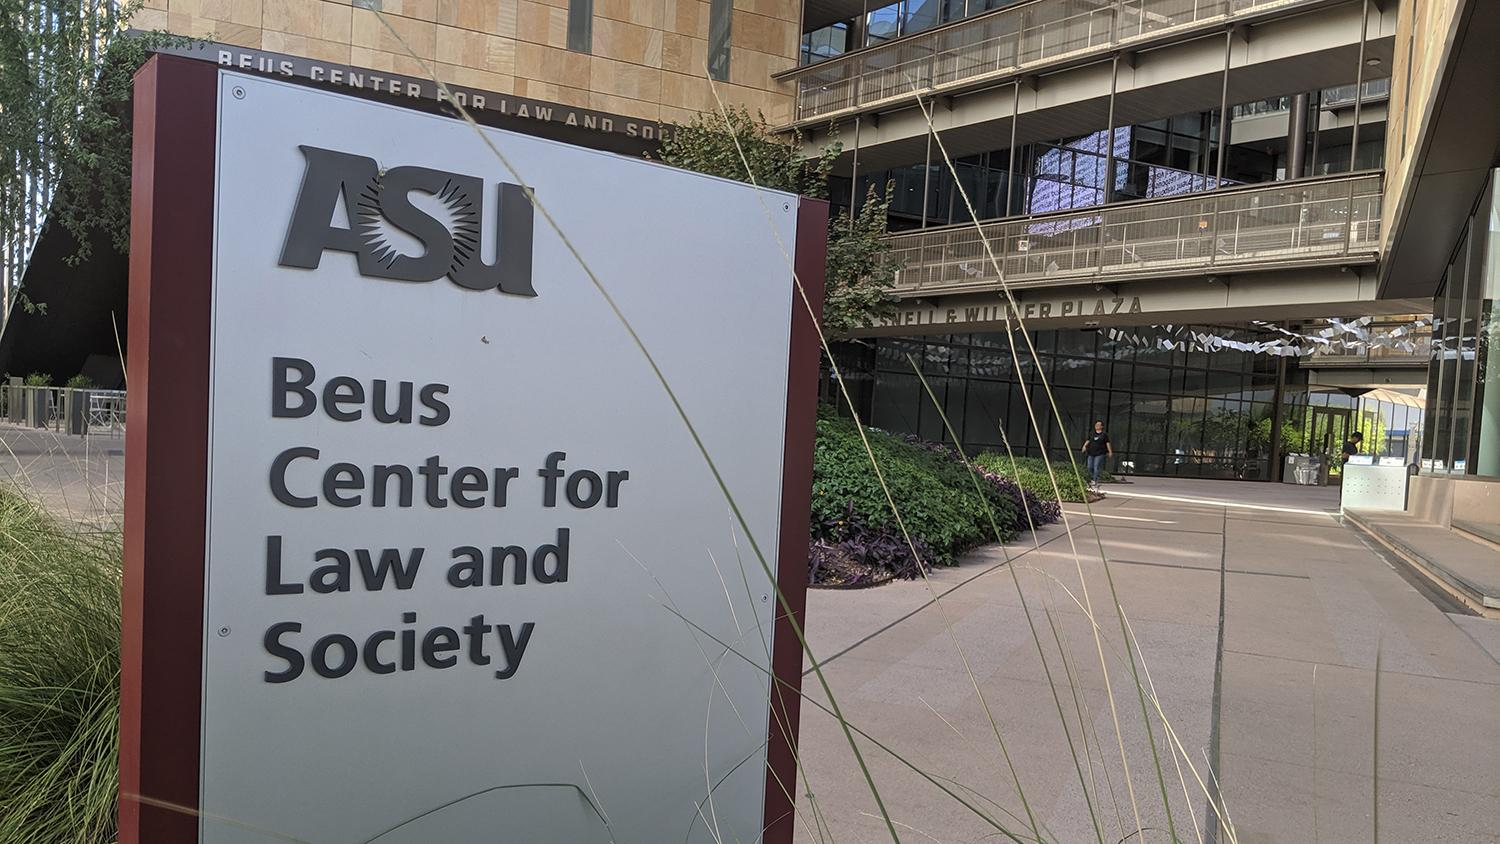 Beus Center for Law and Society